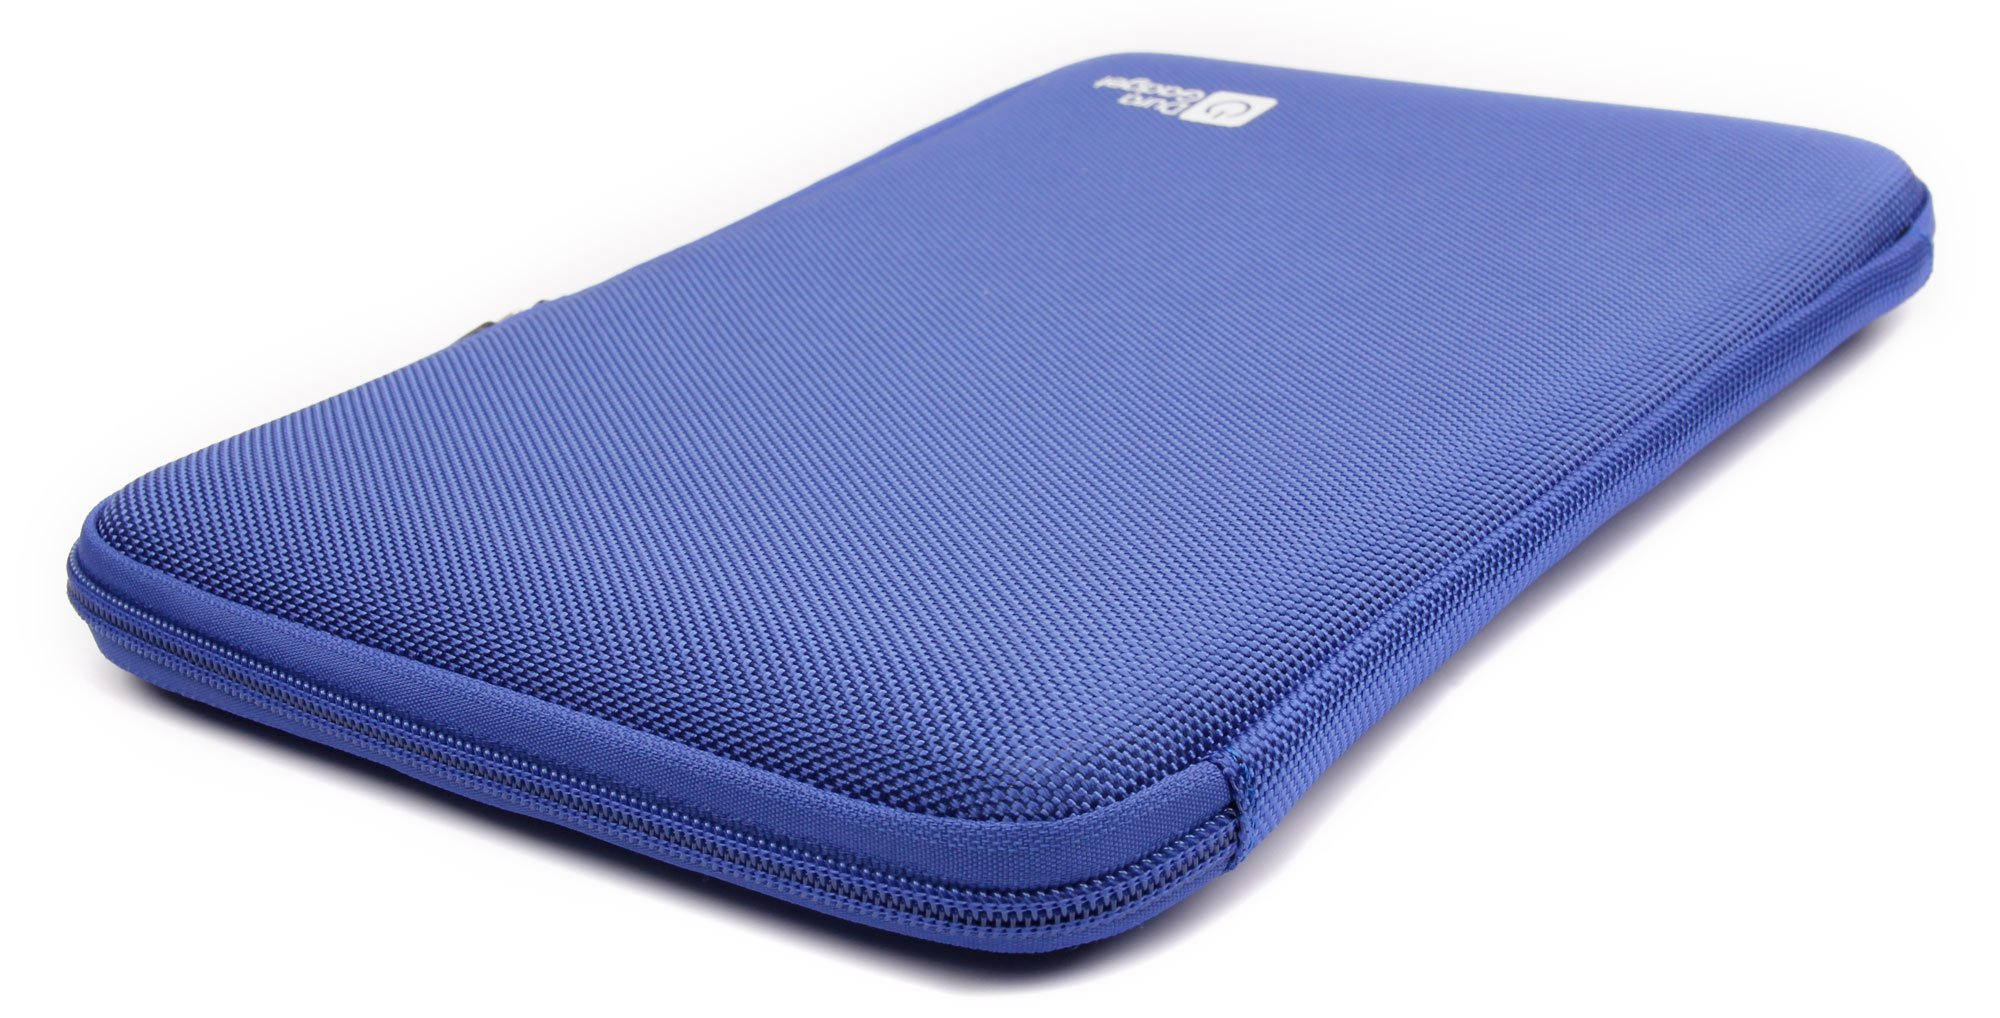 New DURAGADGET Brilliantly Resilient Hard Shell Case Cover Sleeve With Internal Ergonomic Designed Net Accessories Pouch In Vibrant BLUE COLOUR For Asus Transformer Book T100TA, Asus MEMO PAD 10, Asus Transformer Pad TF701T, Transformer Infinity & Transfo by DURAGADGET (Image #2)